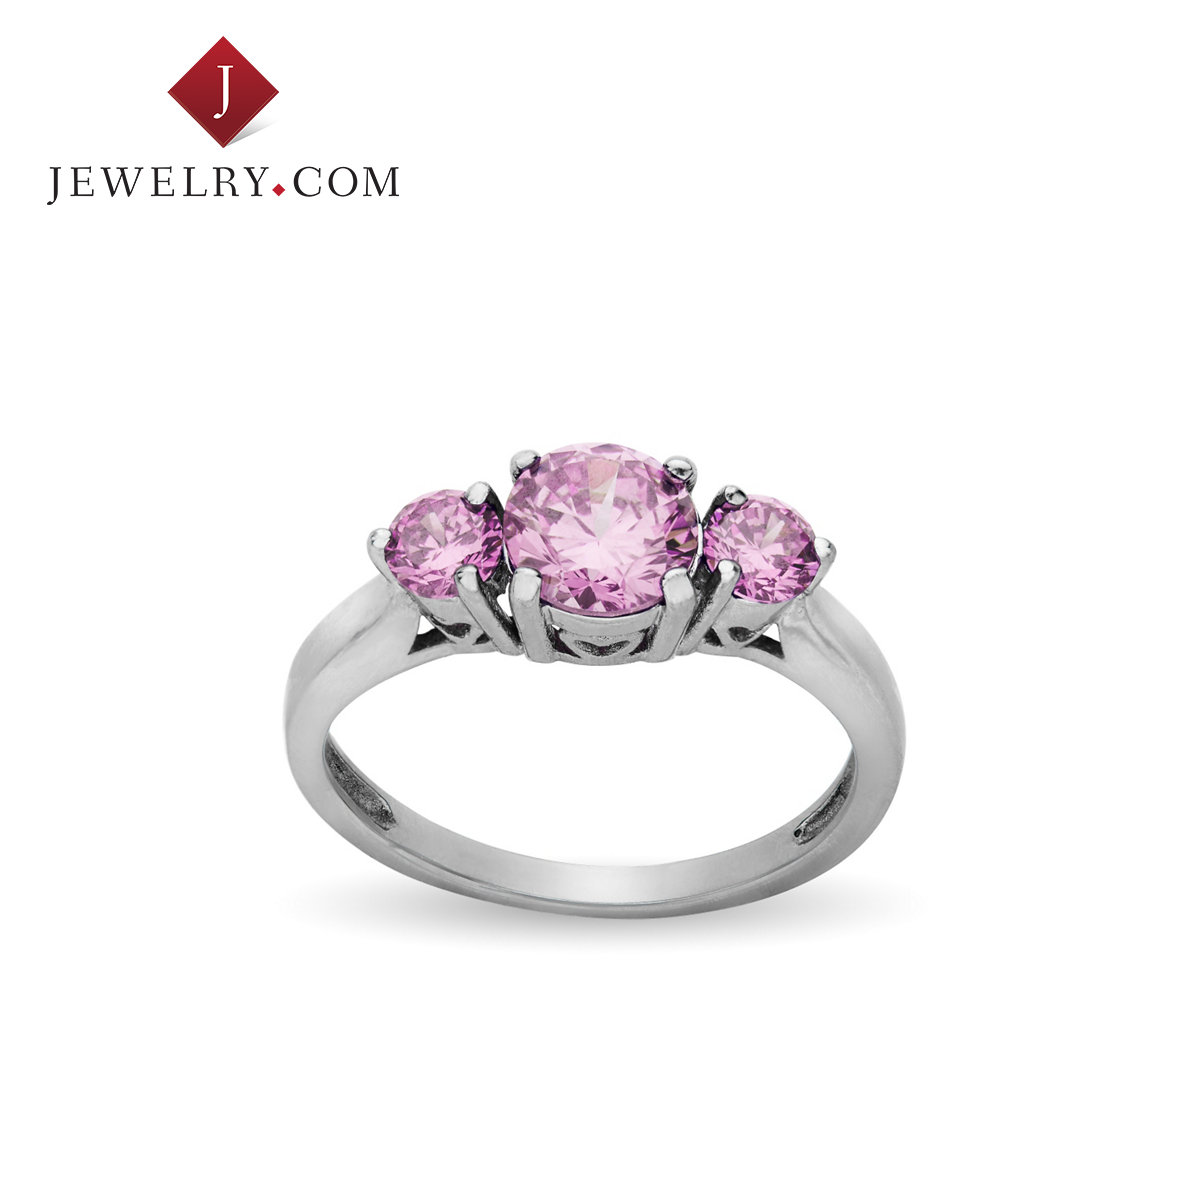 Jewelry.com official pink a-al2o3 baddeleyite alloy classic nvjie ring fashion wild ornaments